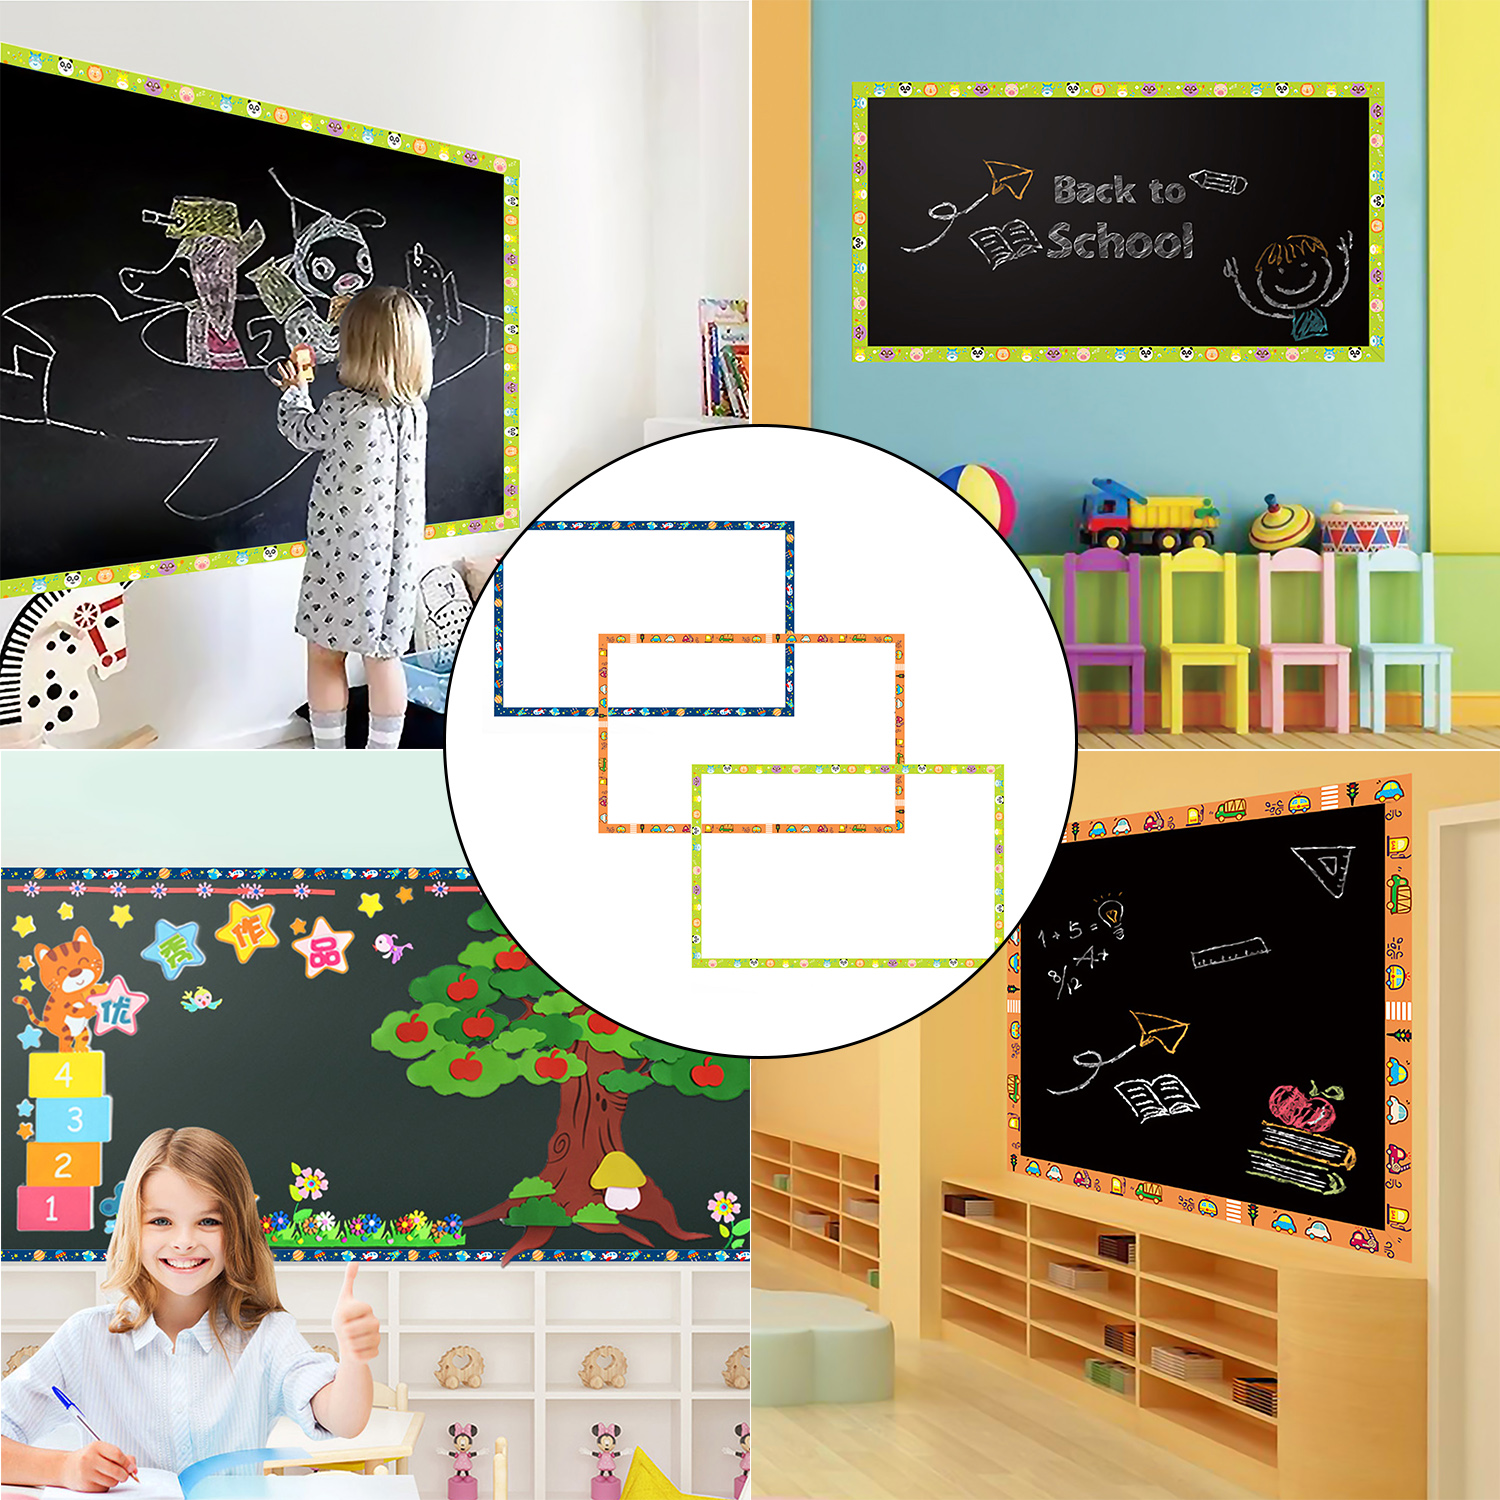 Bulletin Board Borders Decorative Trimmer Stickers Home Classroom Party Decoration For Black Board Chalkboard Whiteboard